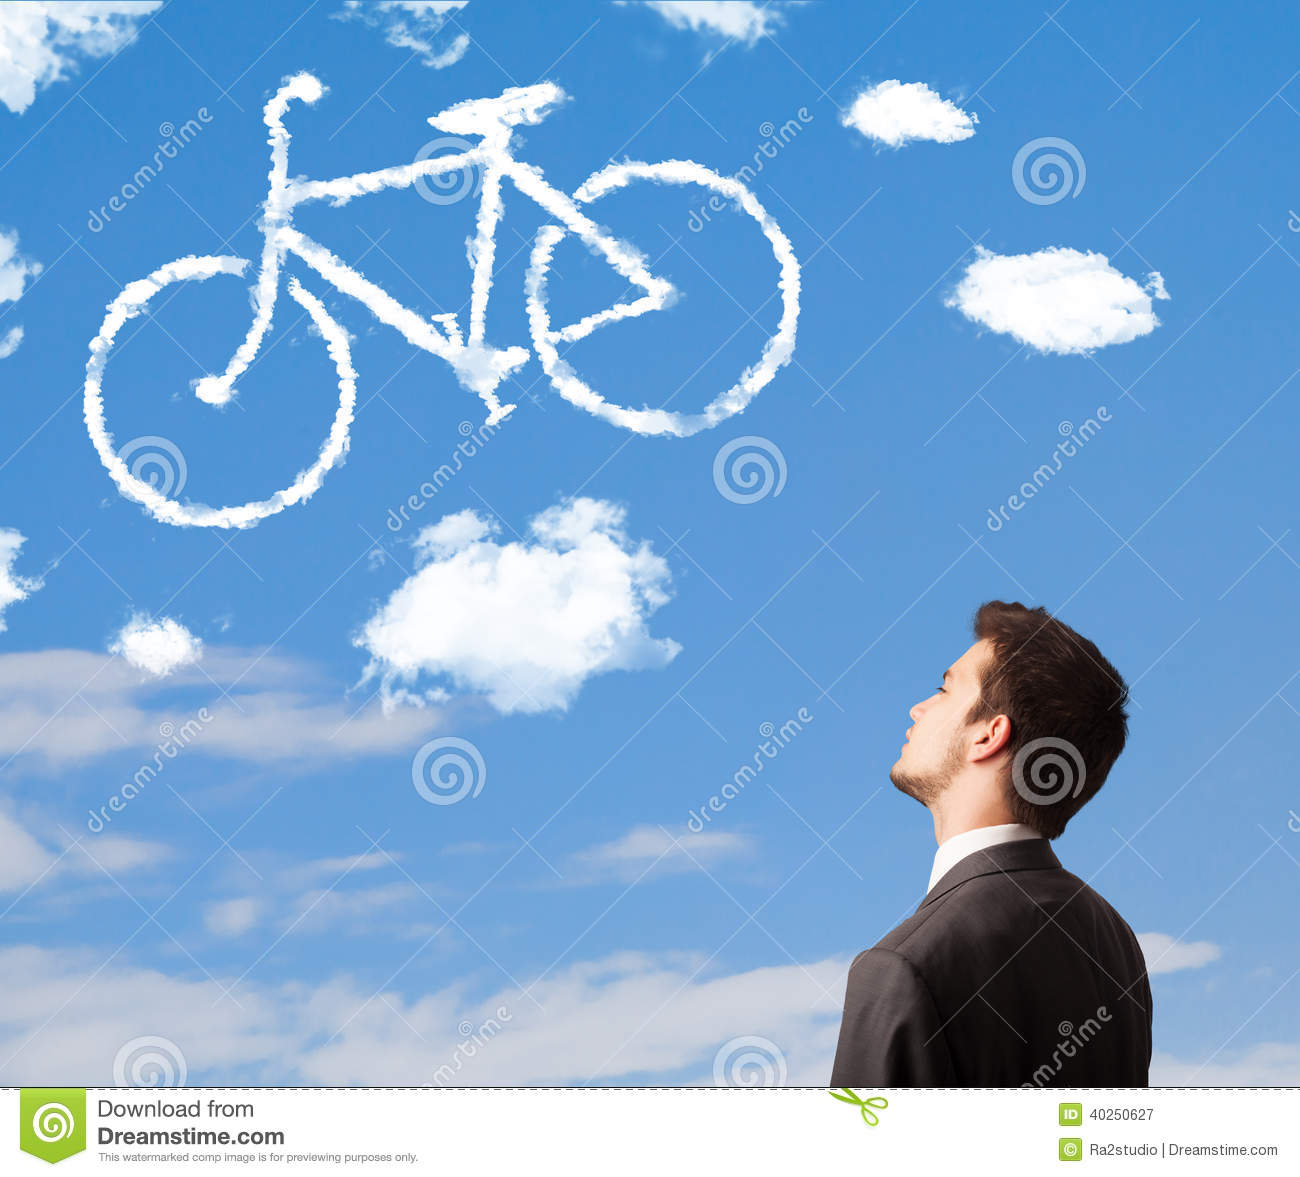 man looking at bicycle clouds on blue sky